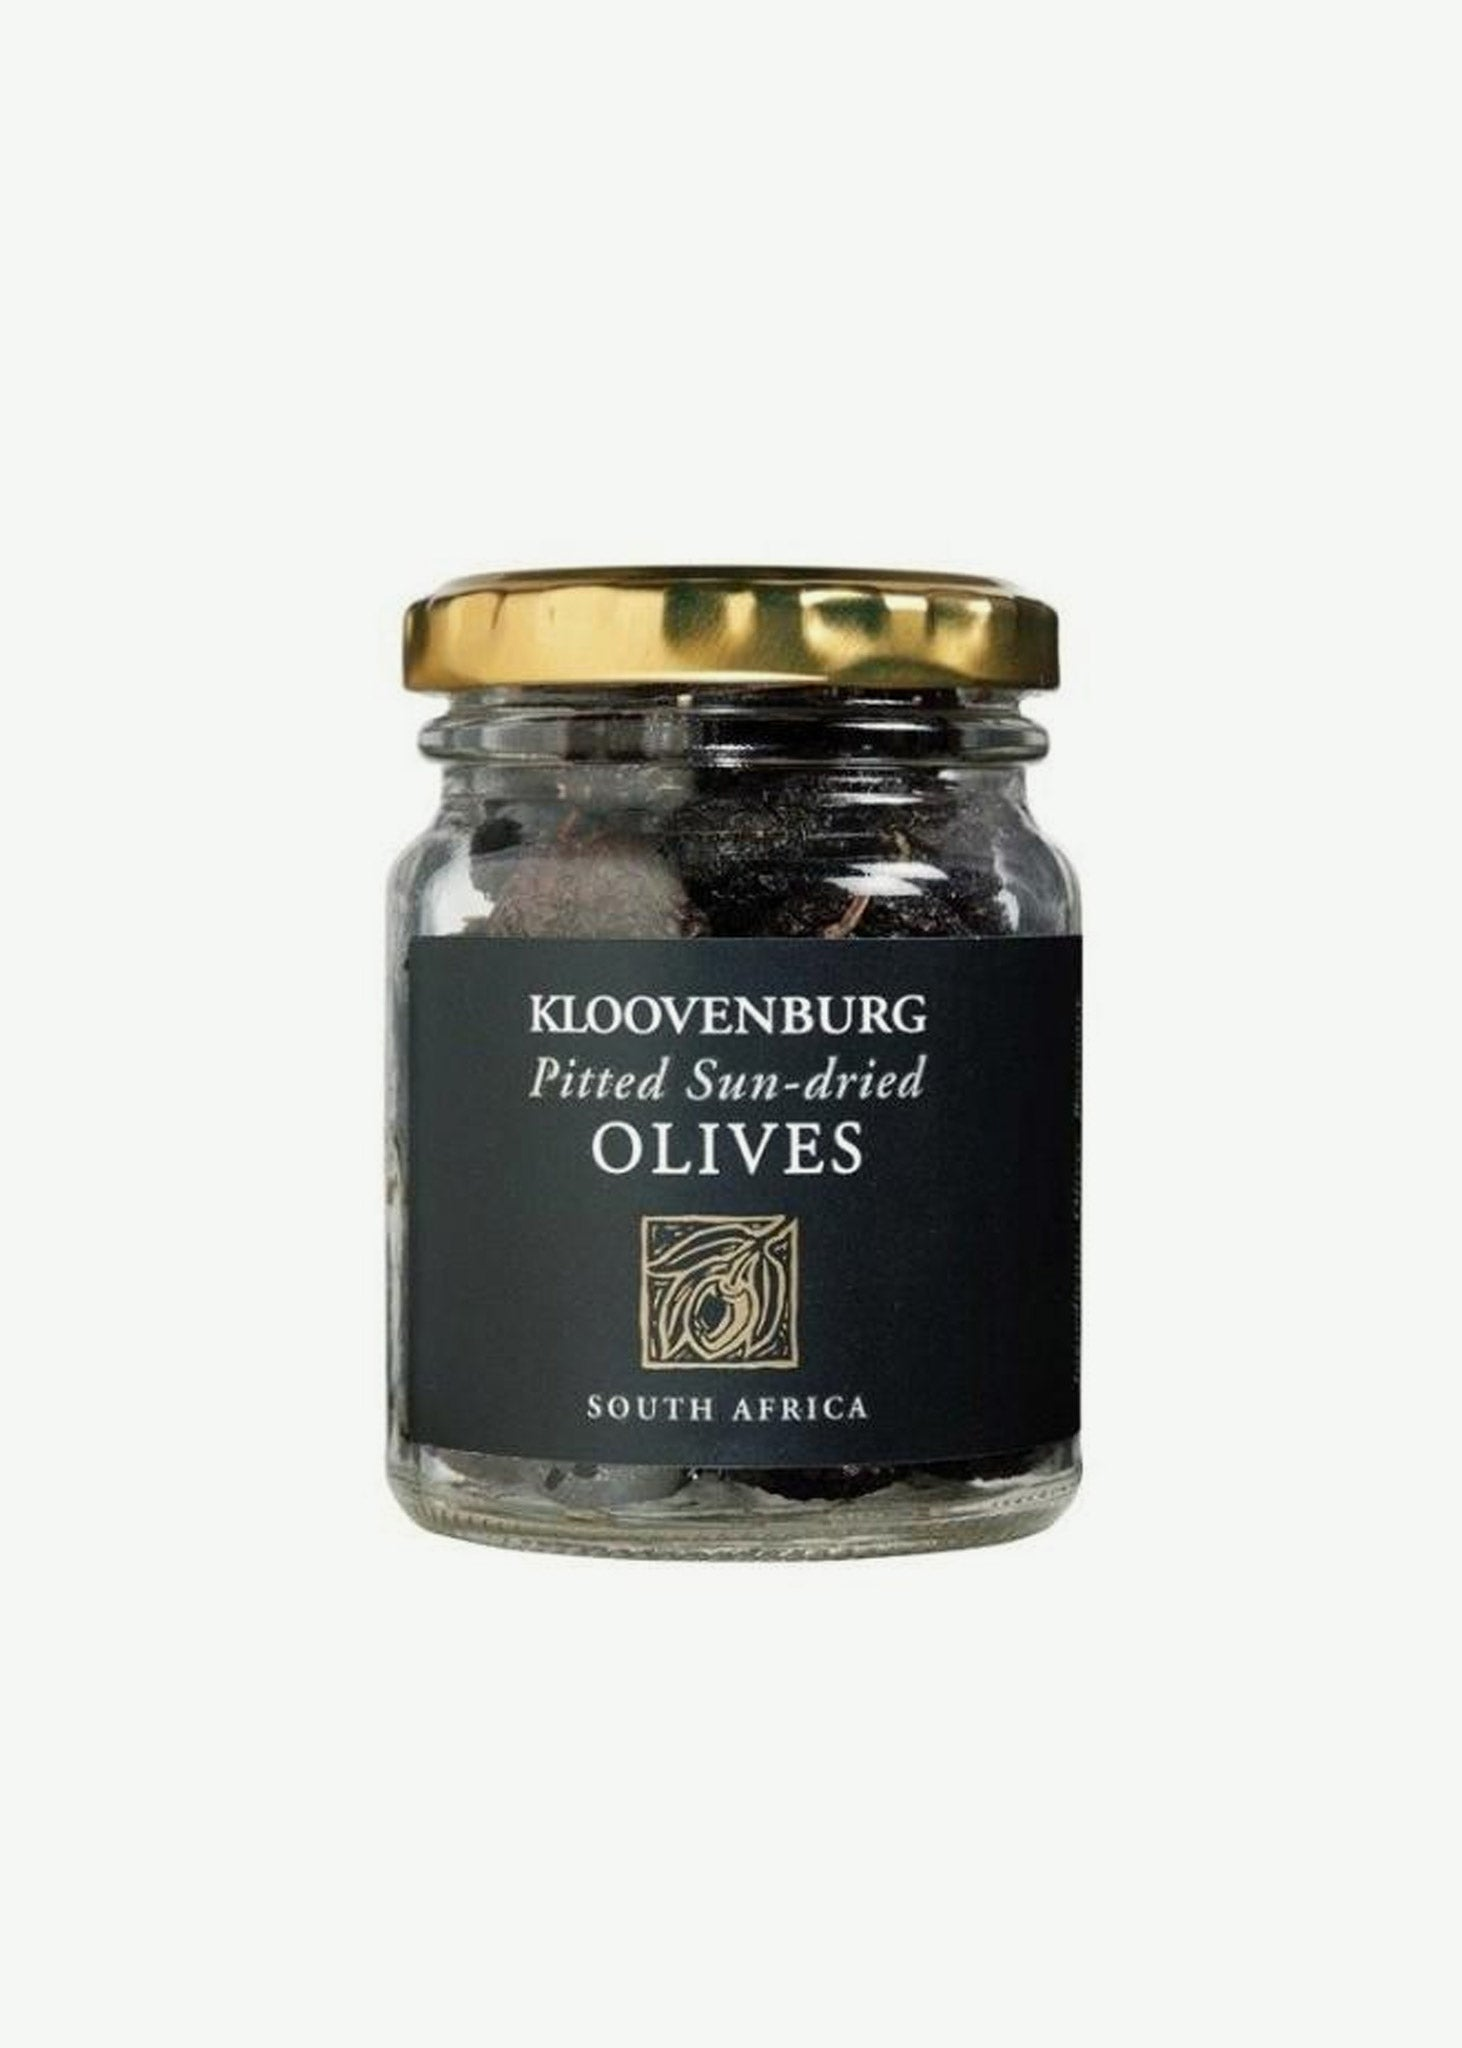 Kloovenburg Pitted Sun-dried Olives 75g